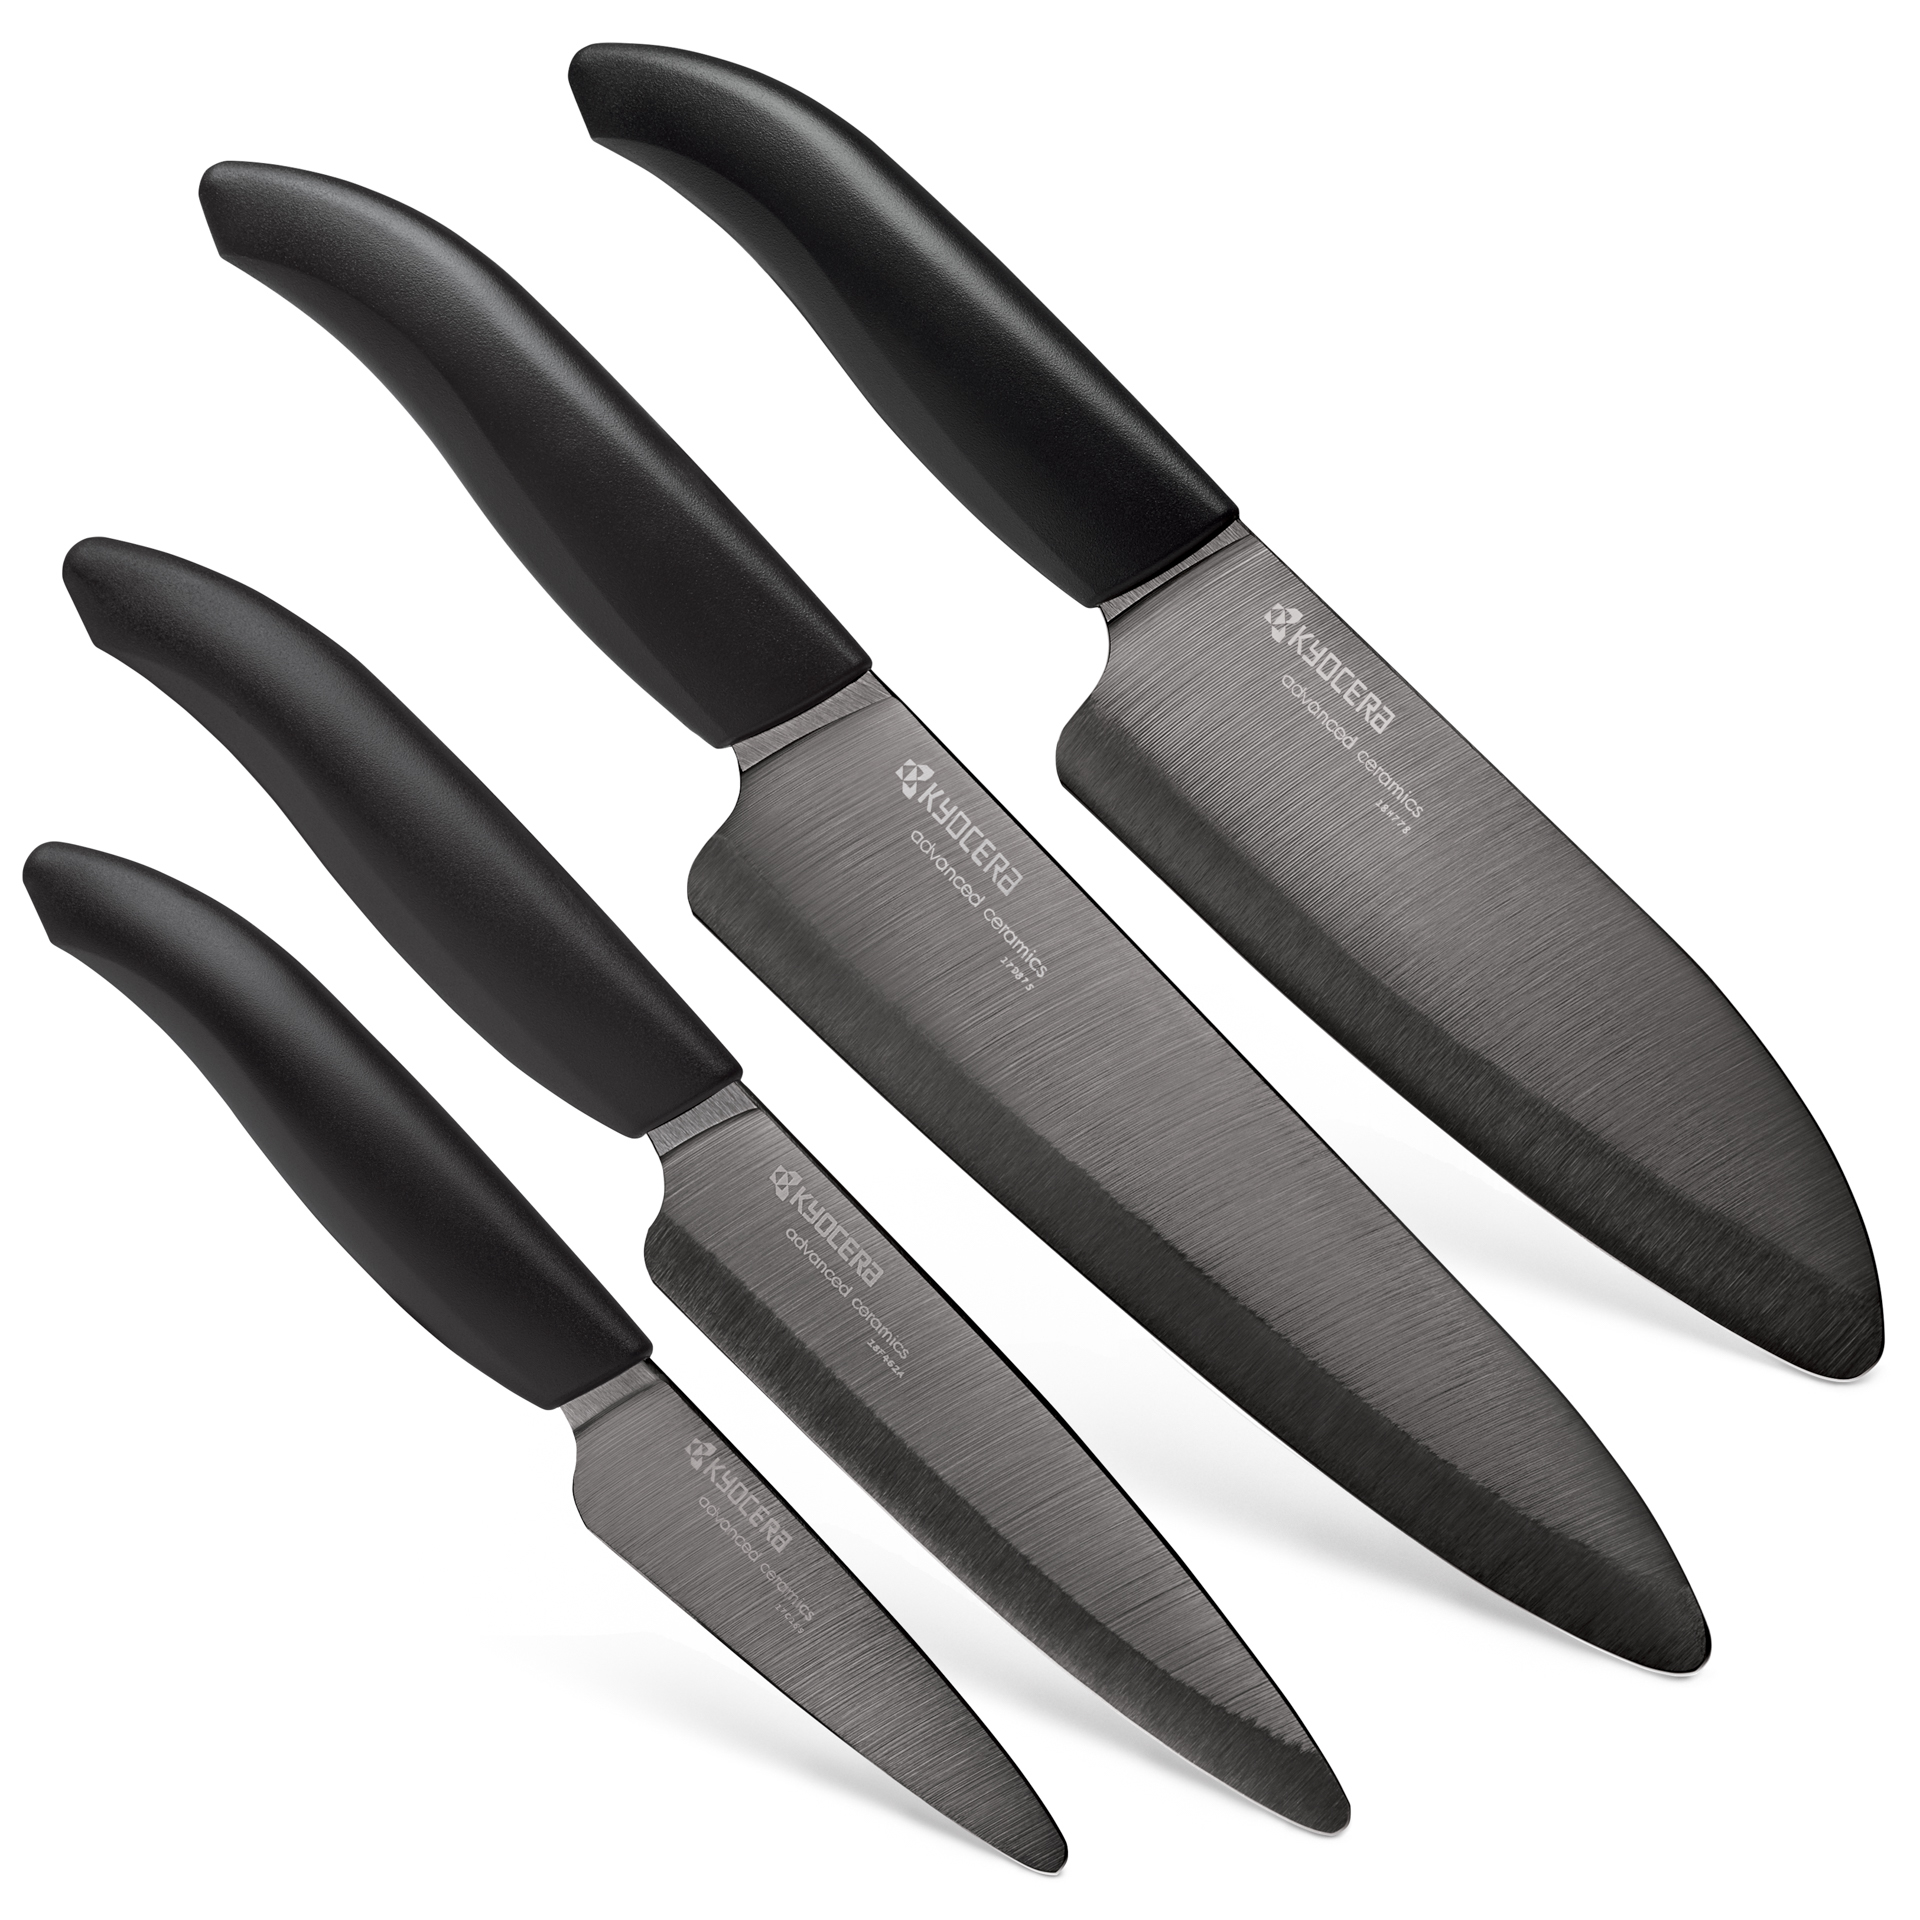 "Picture of Revolution 4 Piece Ceramic Knife Set - 7""Chef's, 5.5"" Santoku,4.5"" Utility and 3"" Paring"